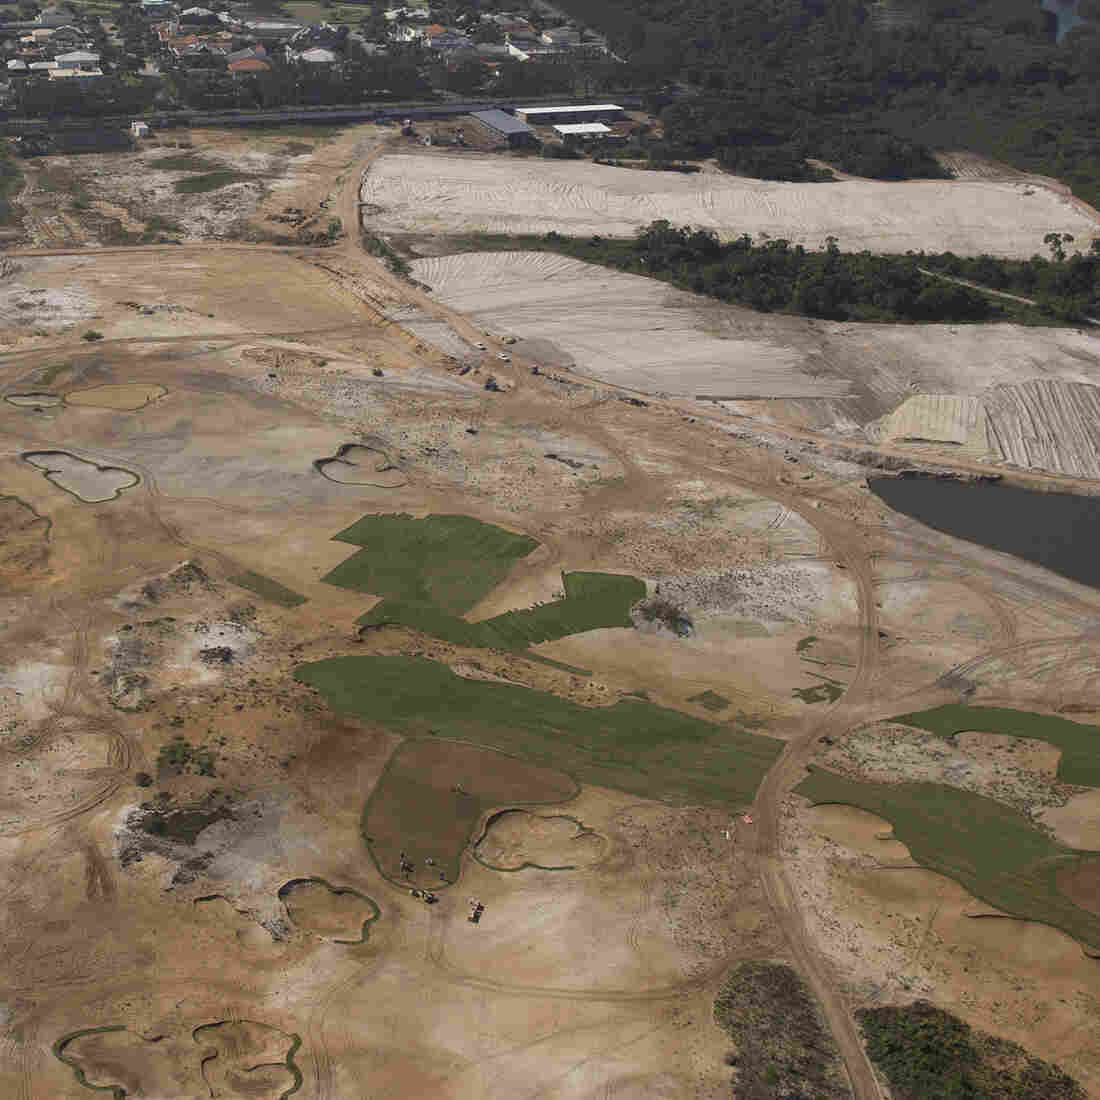 An aerial view of the Rio 2016 Olympic golf course under construction in Rio de Janeiro, Brazil.